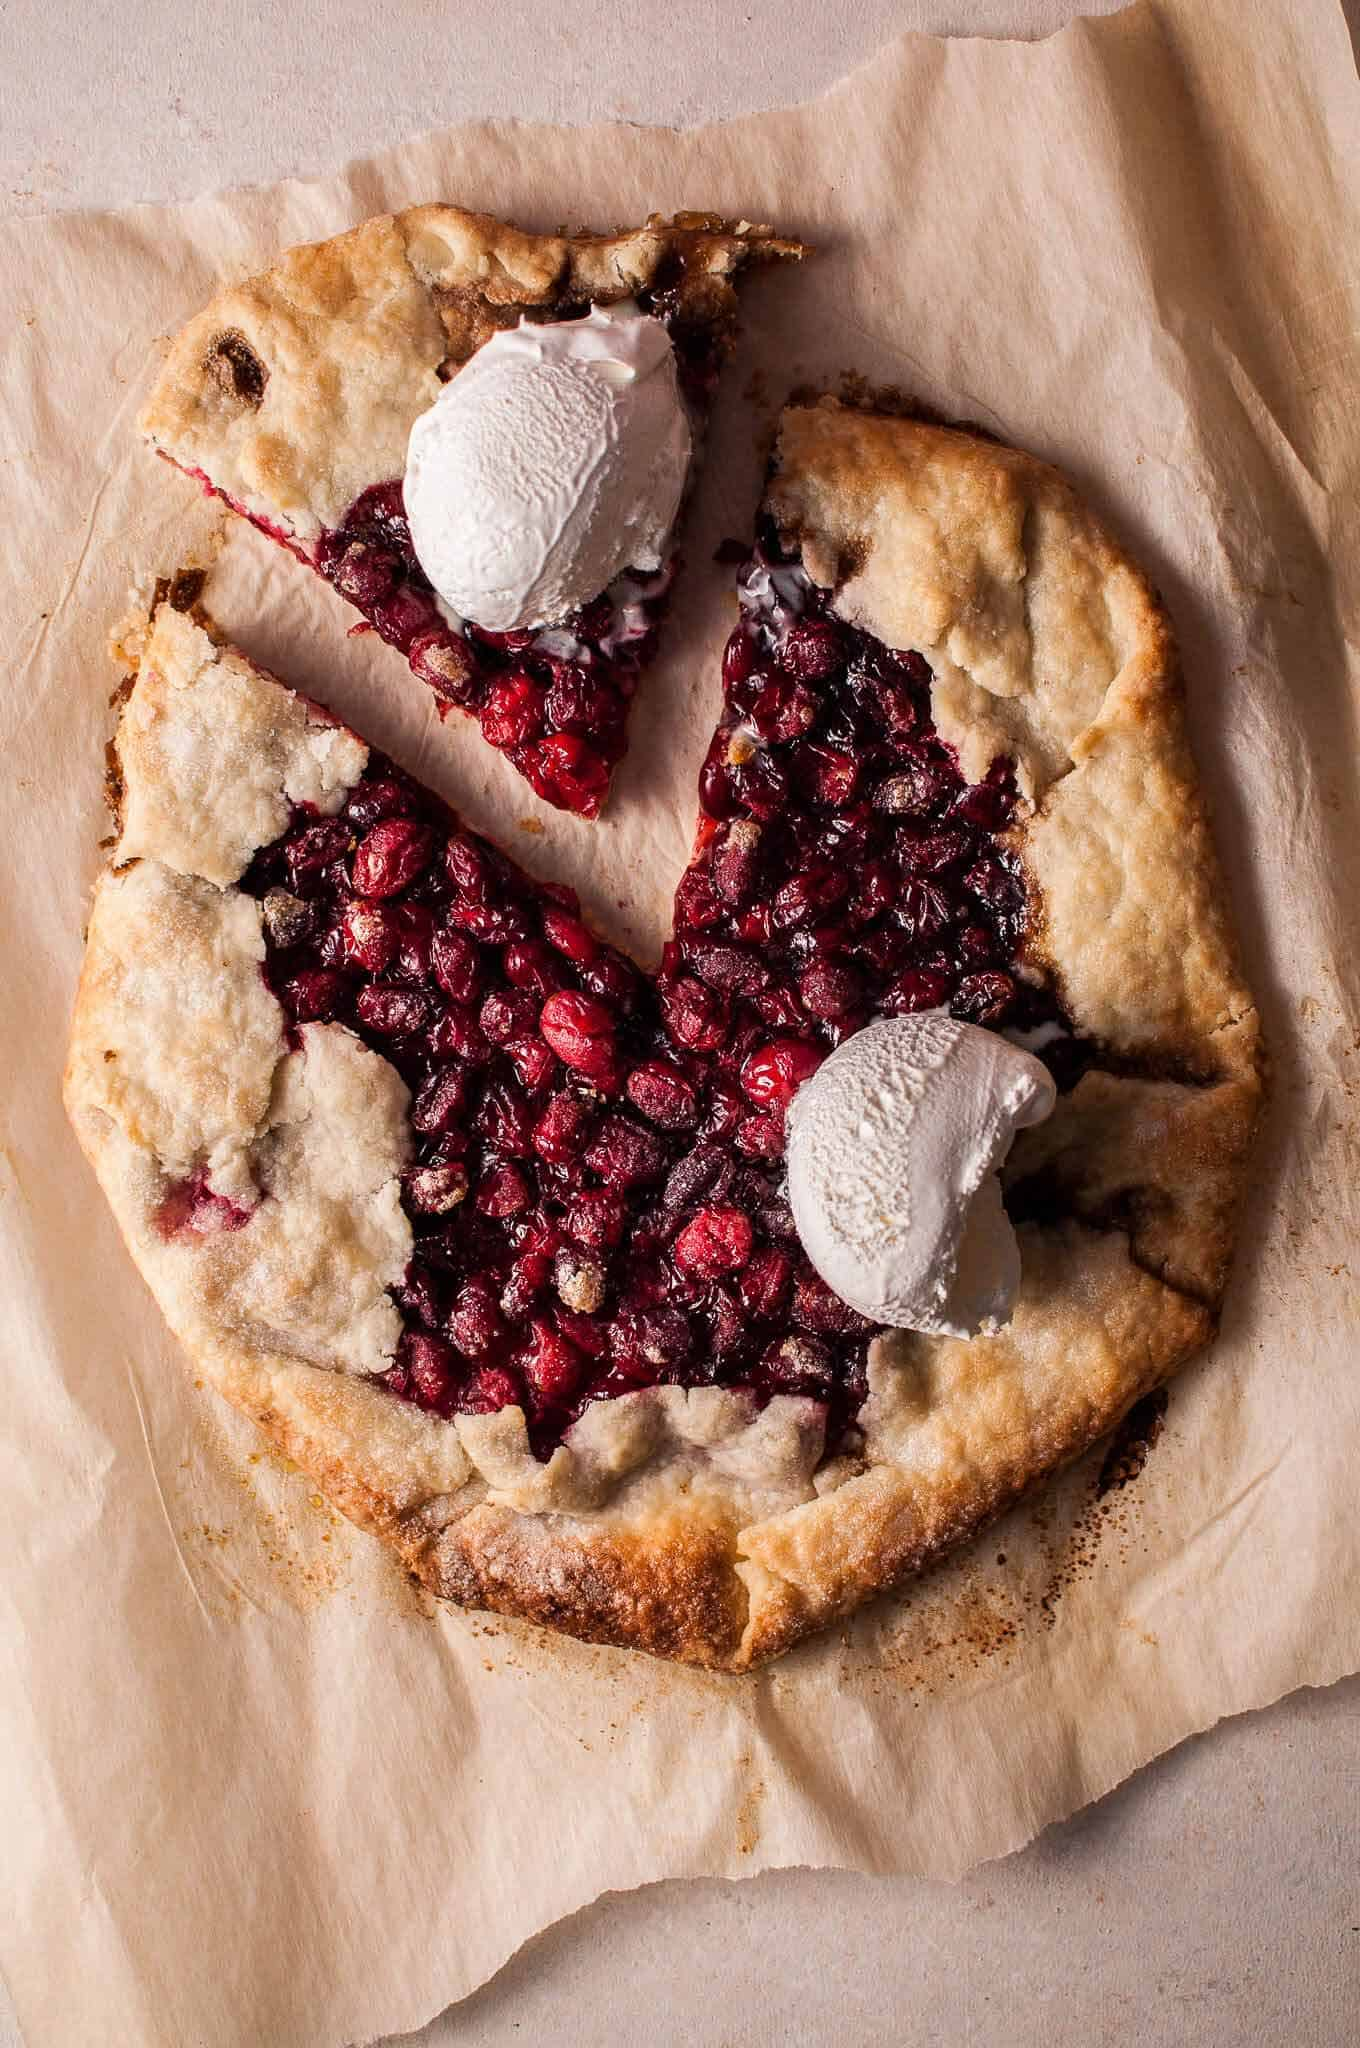 Cranberry galette + 15 Farmers market recipes to make in December! Delicious, autumn, winter, and holiday recipes made with fresh, seasonal produce from your local farmers market or CSA bin. Eat local!